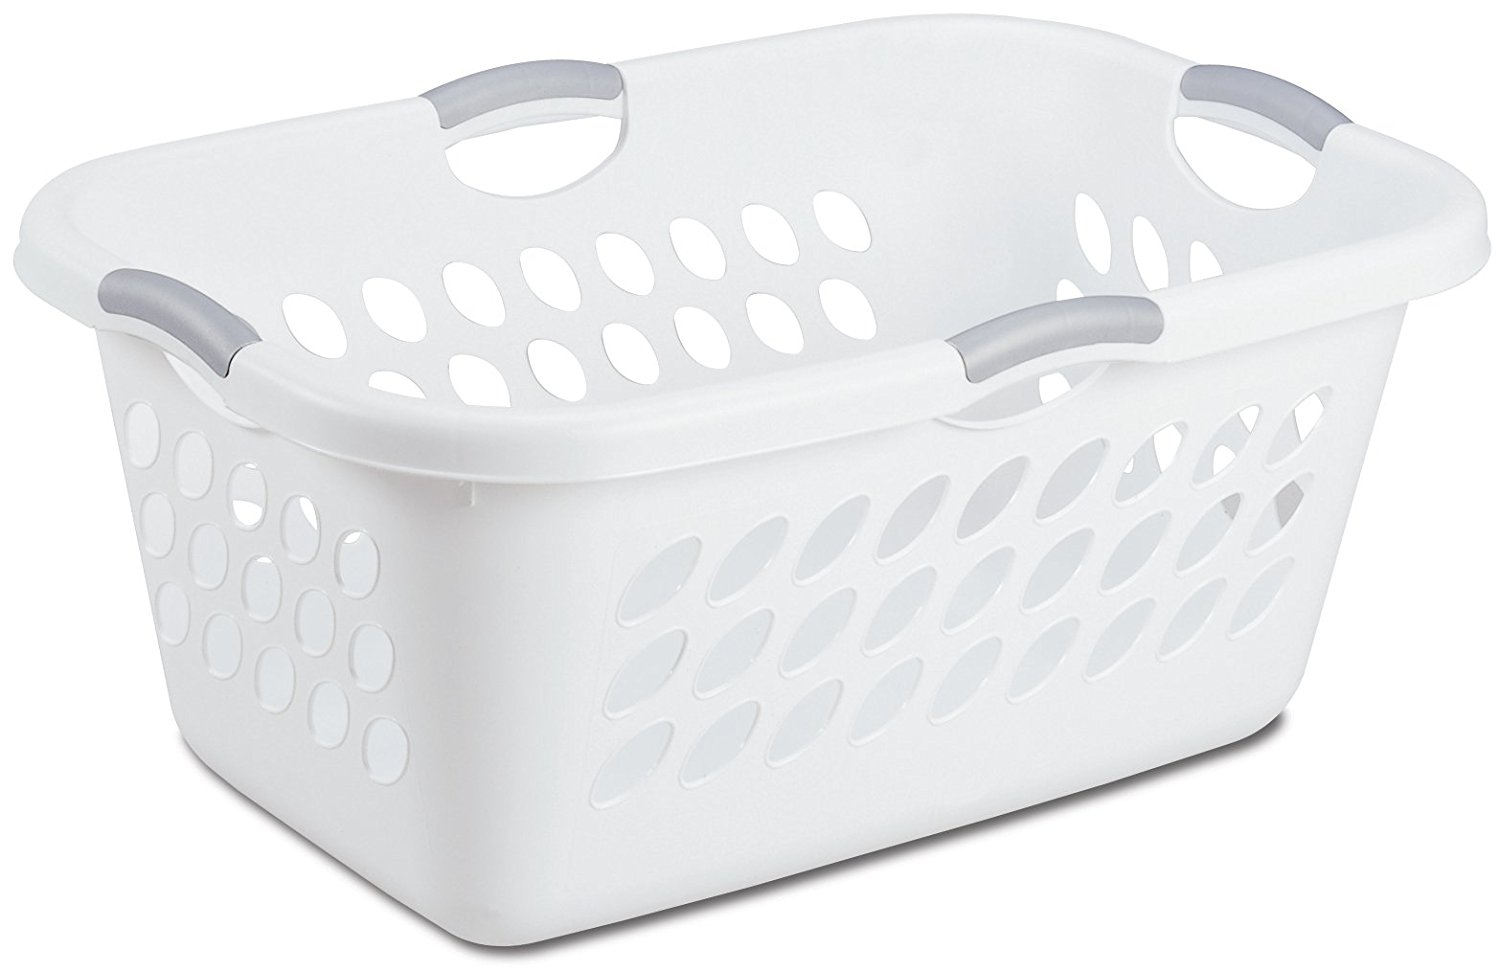 12158006 Ultra Laundry Basket White With Anium Handlese Saving Profile By Sterilite